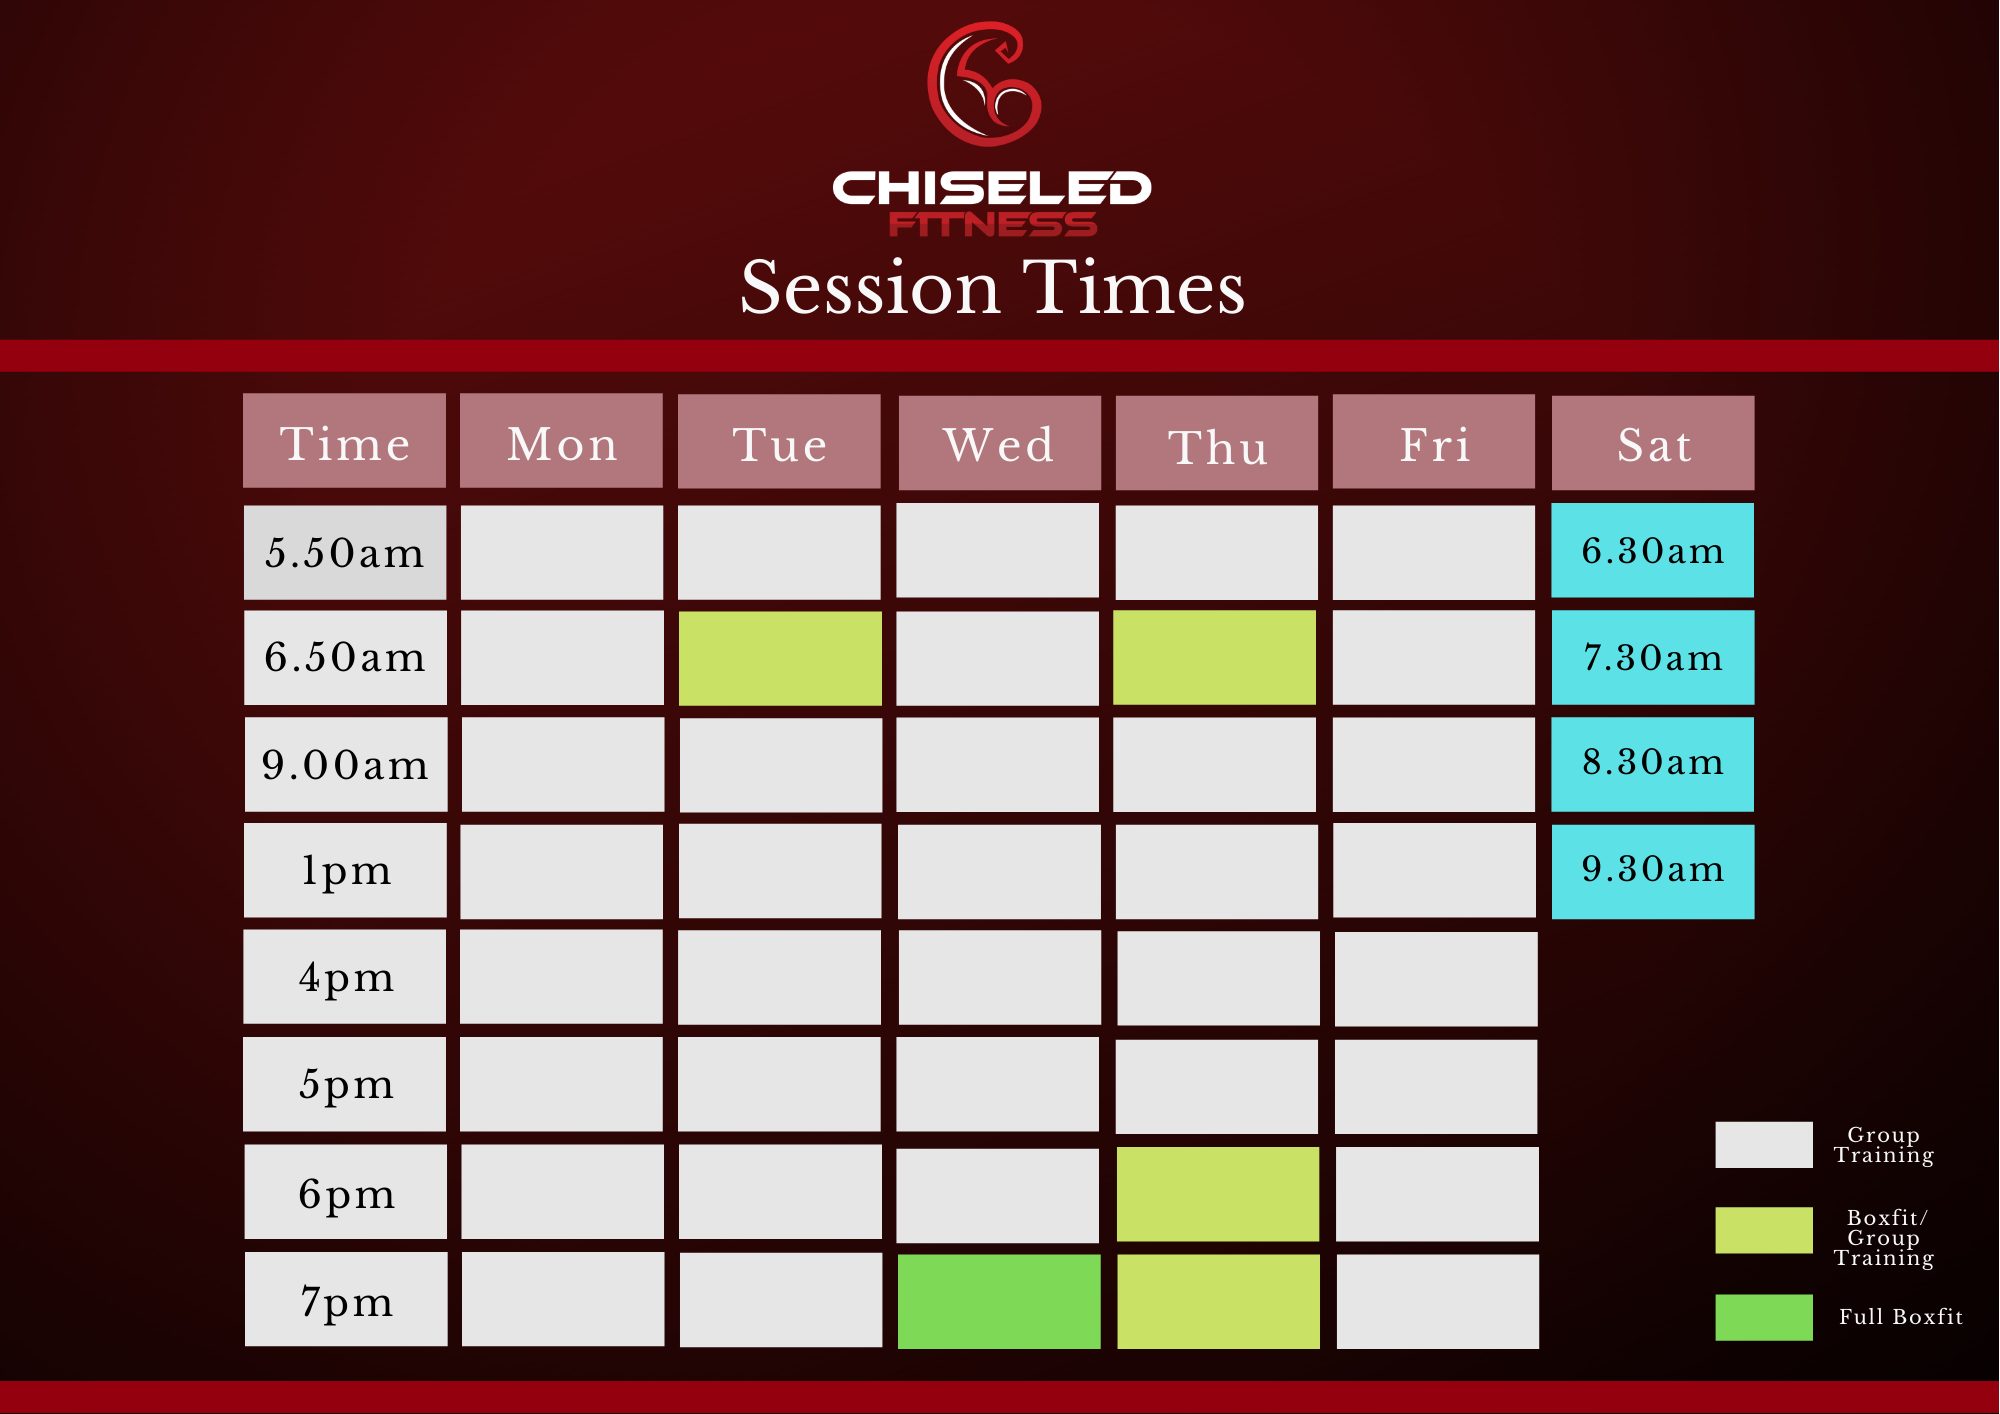 Updated Session Times